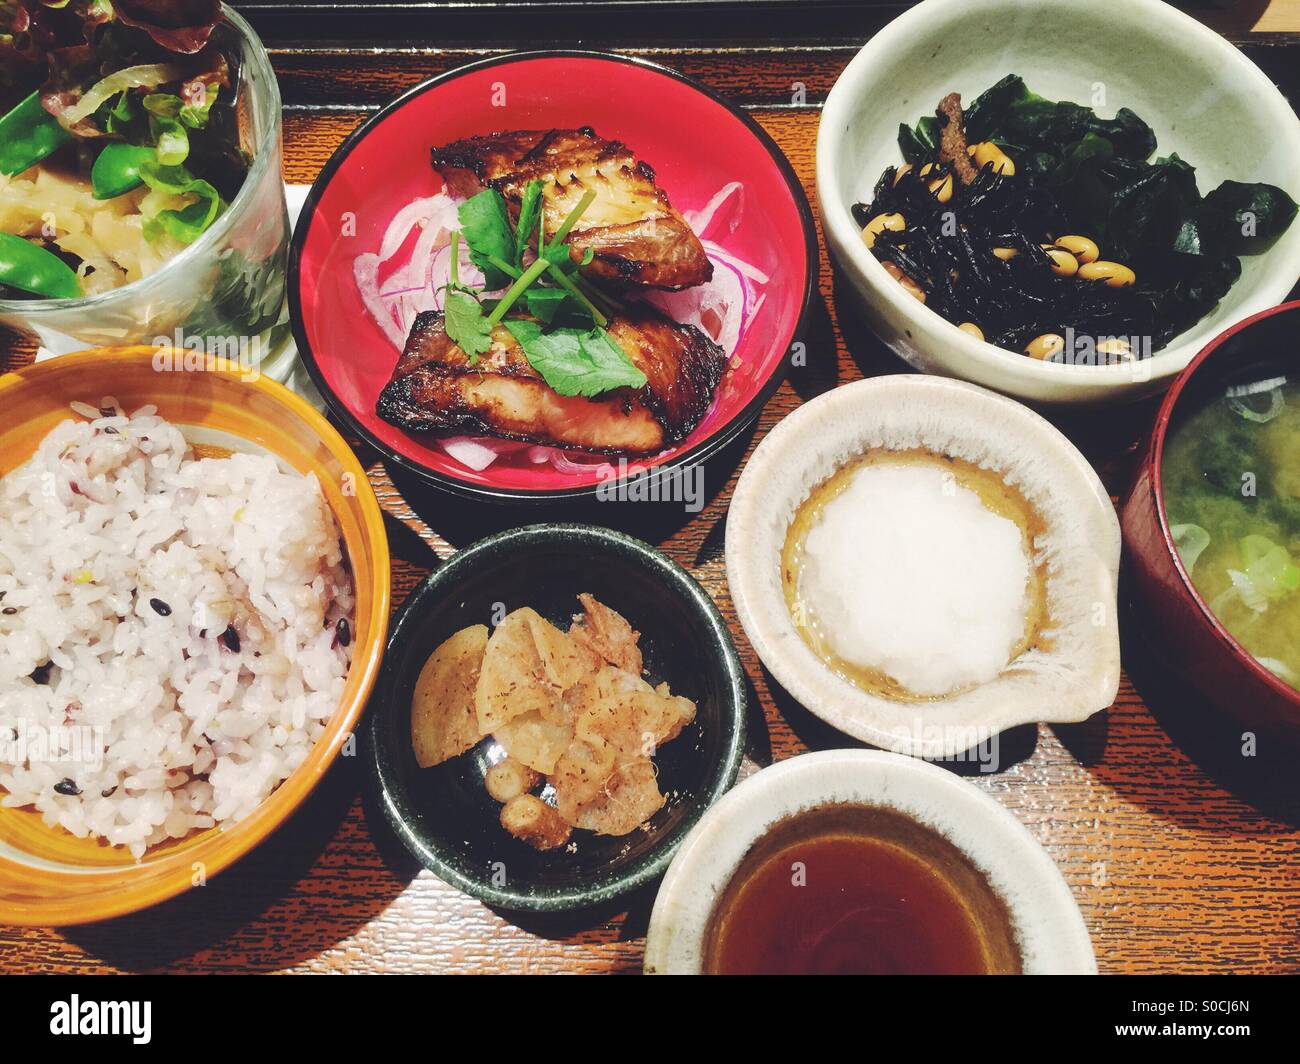 Traditional, healthy Japanese lunch with fish, miso soup, beans, mixed grain rice, daikon oroshi or grated radish - Stock Image